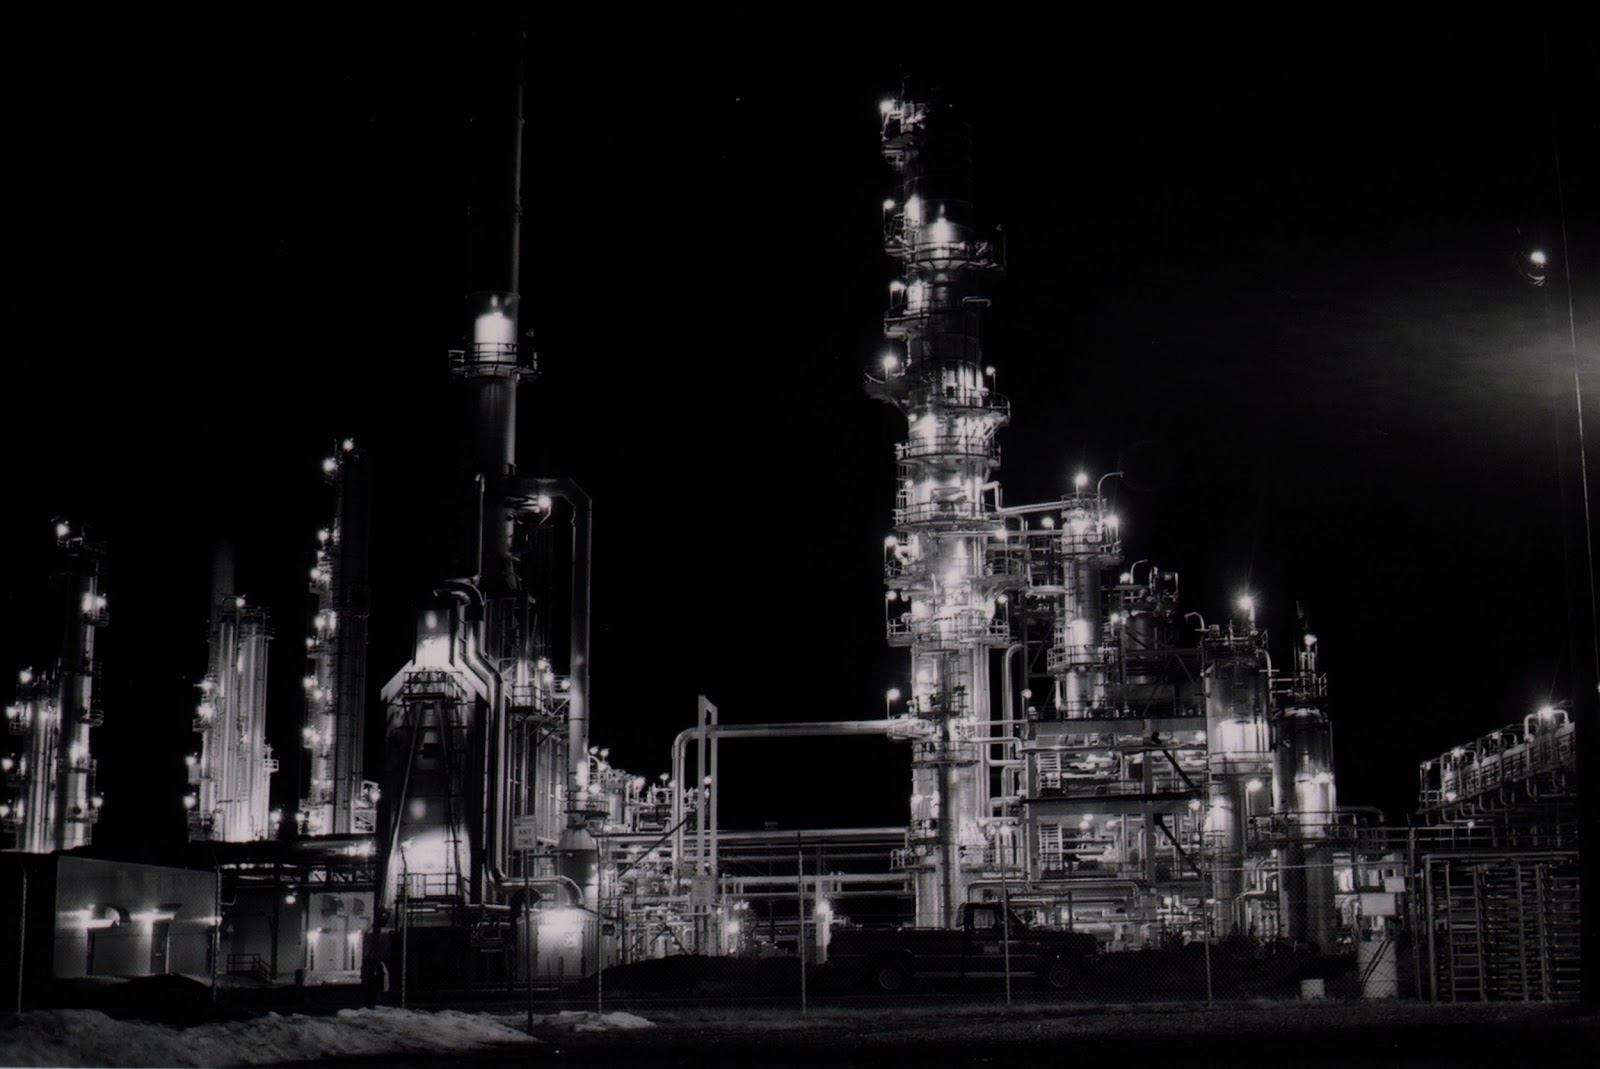 Black and white image of oil refinery